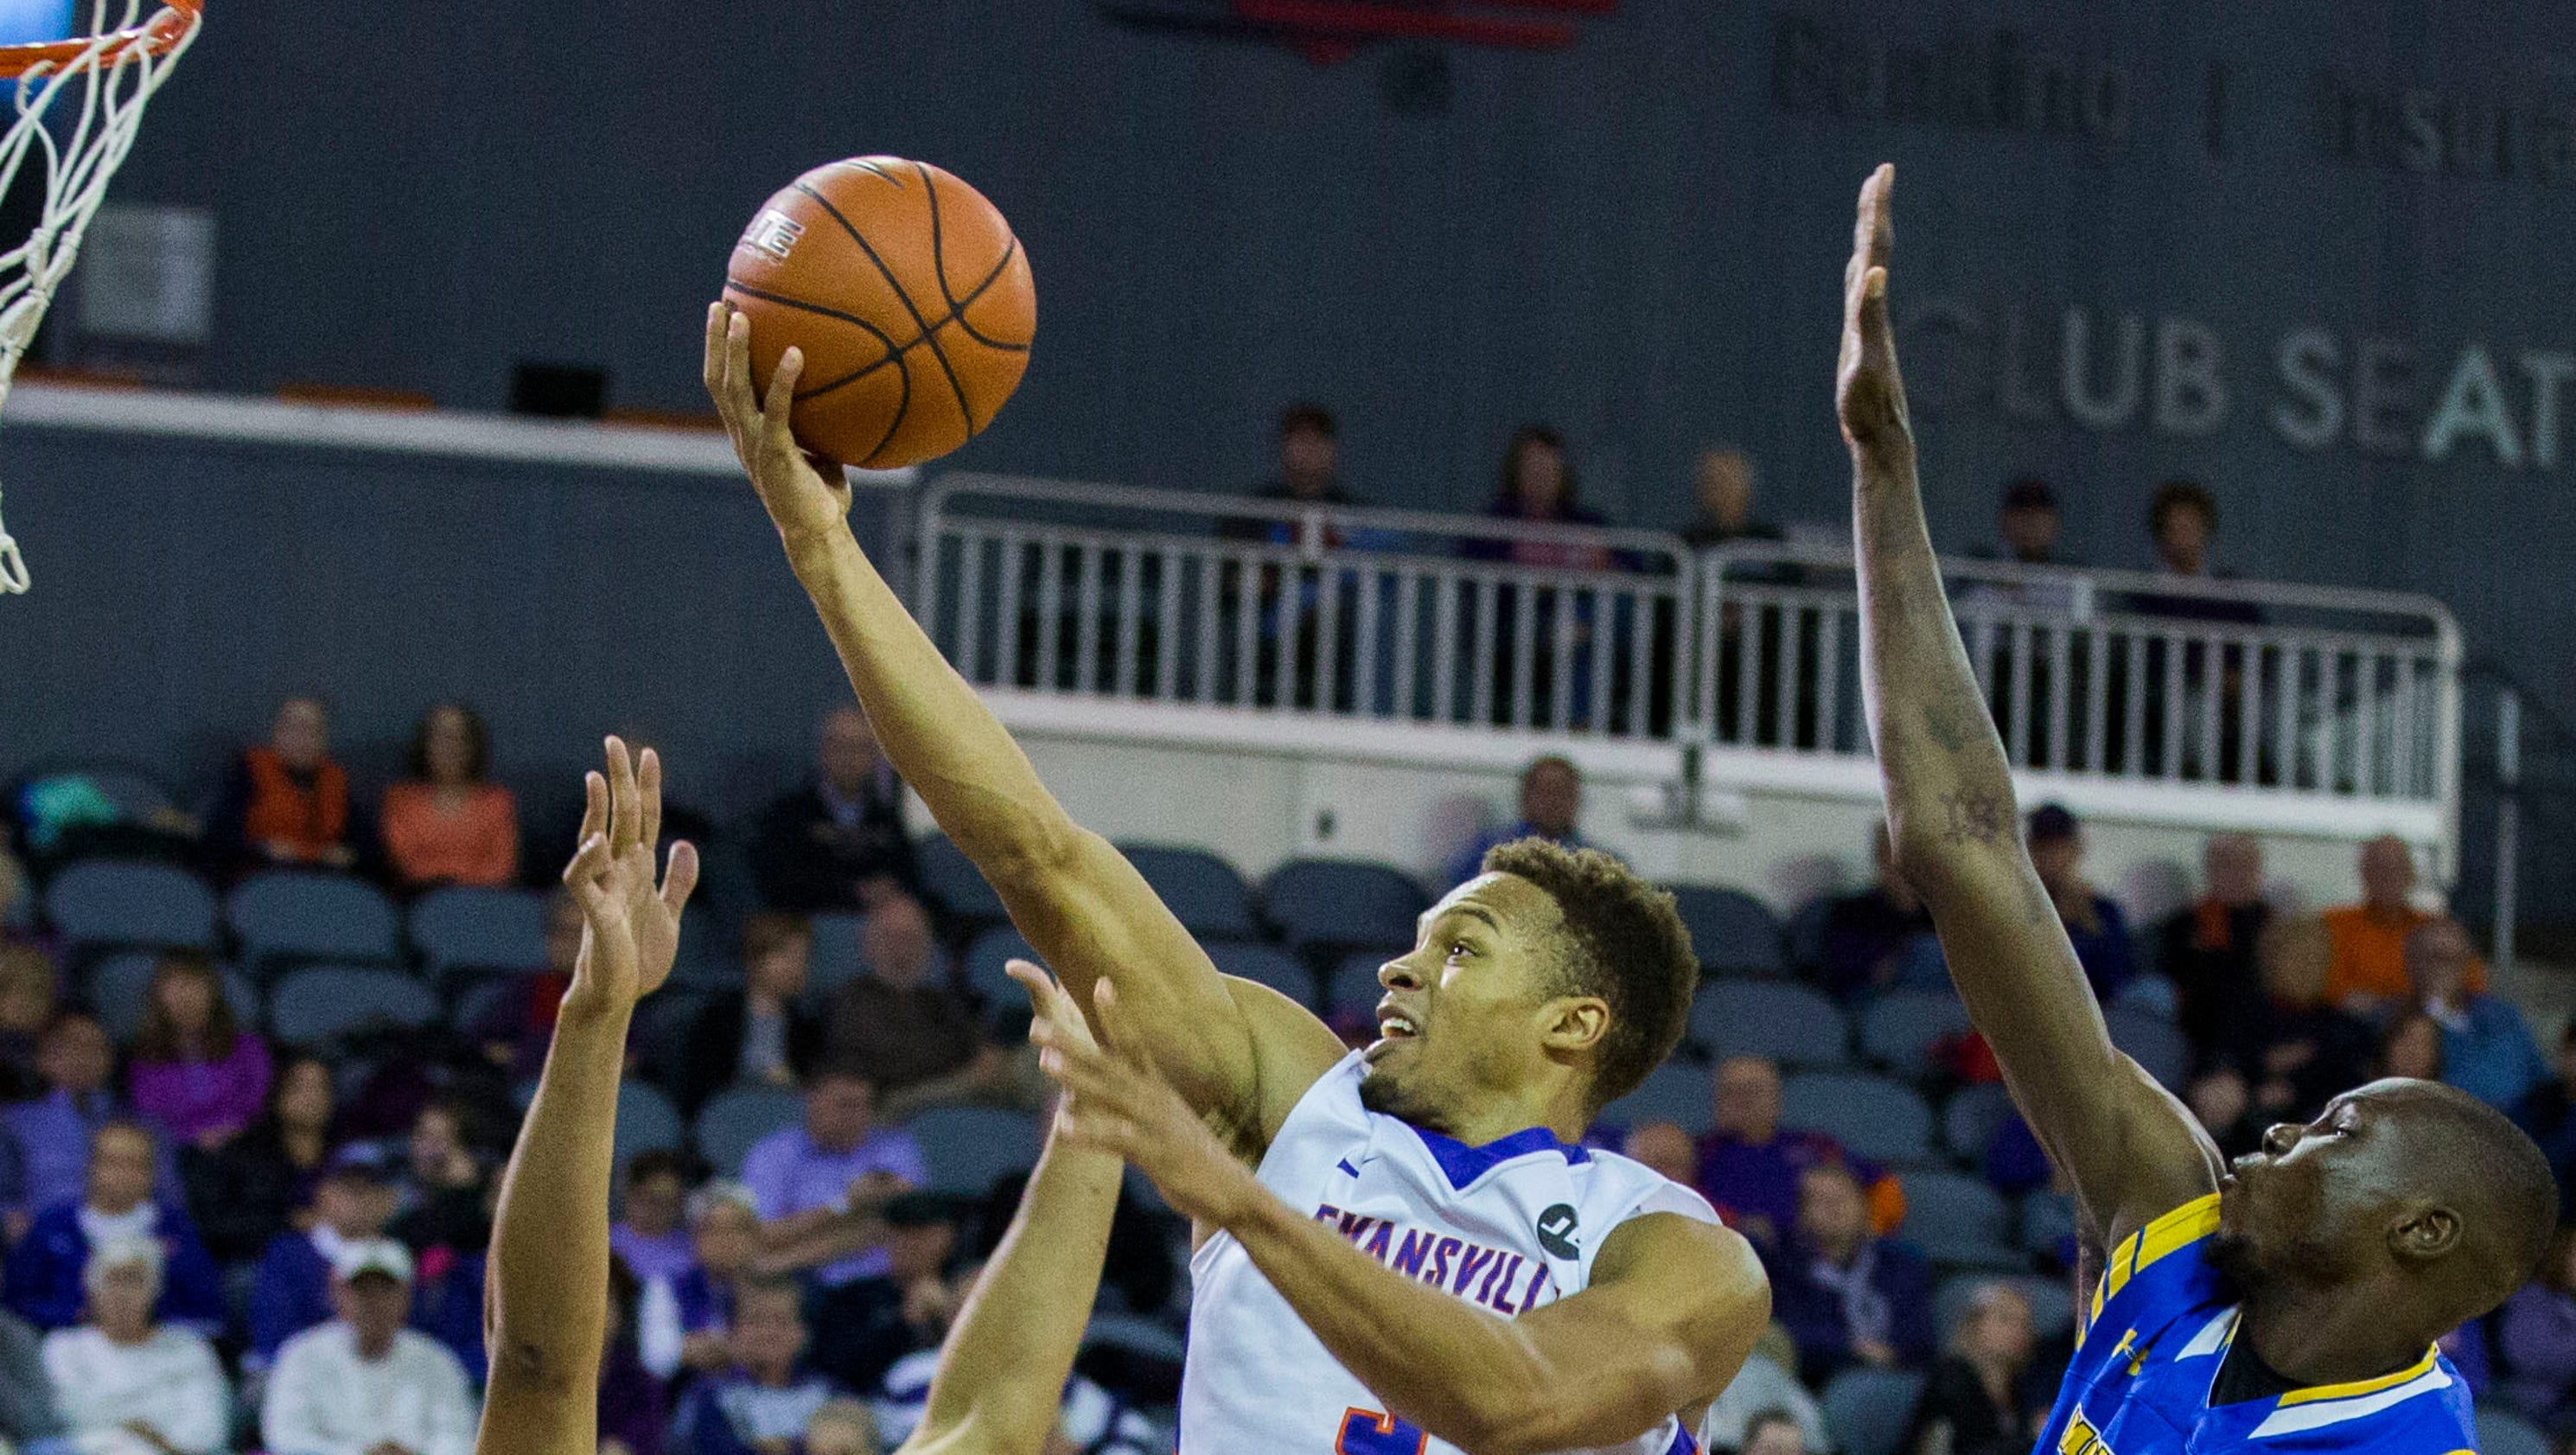 evansville men View the latest men's basketball team news, stats, 2018 schedule & team leaders for the evansville purple aces.